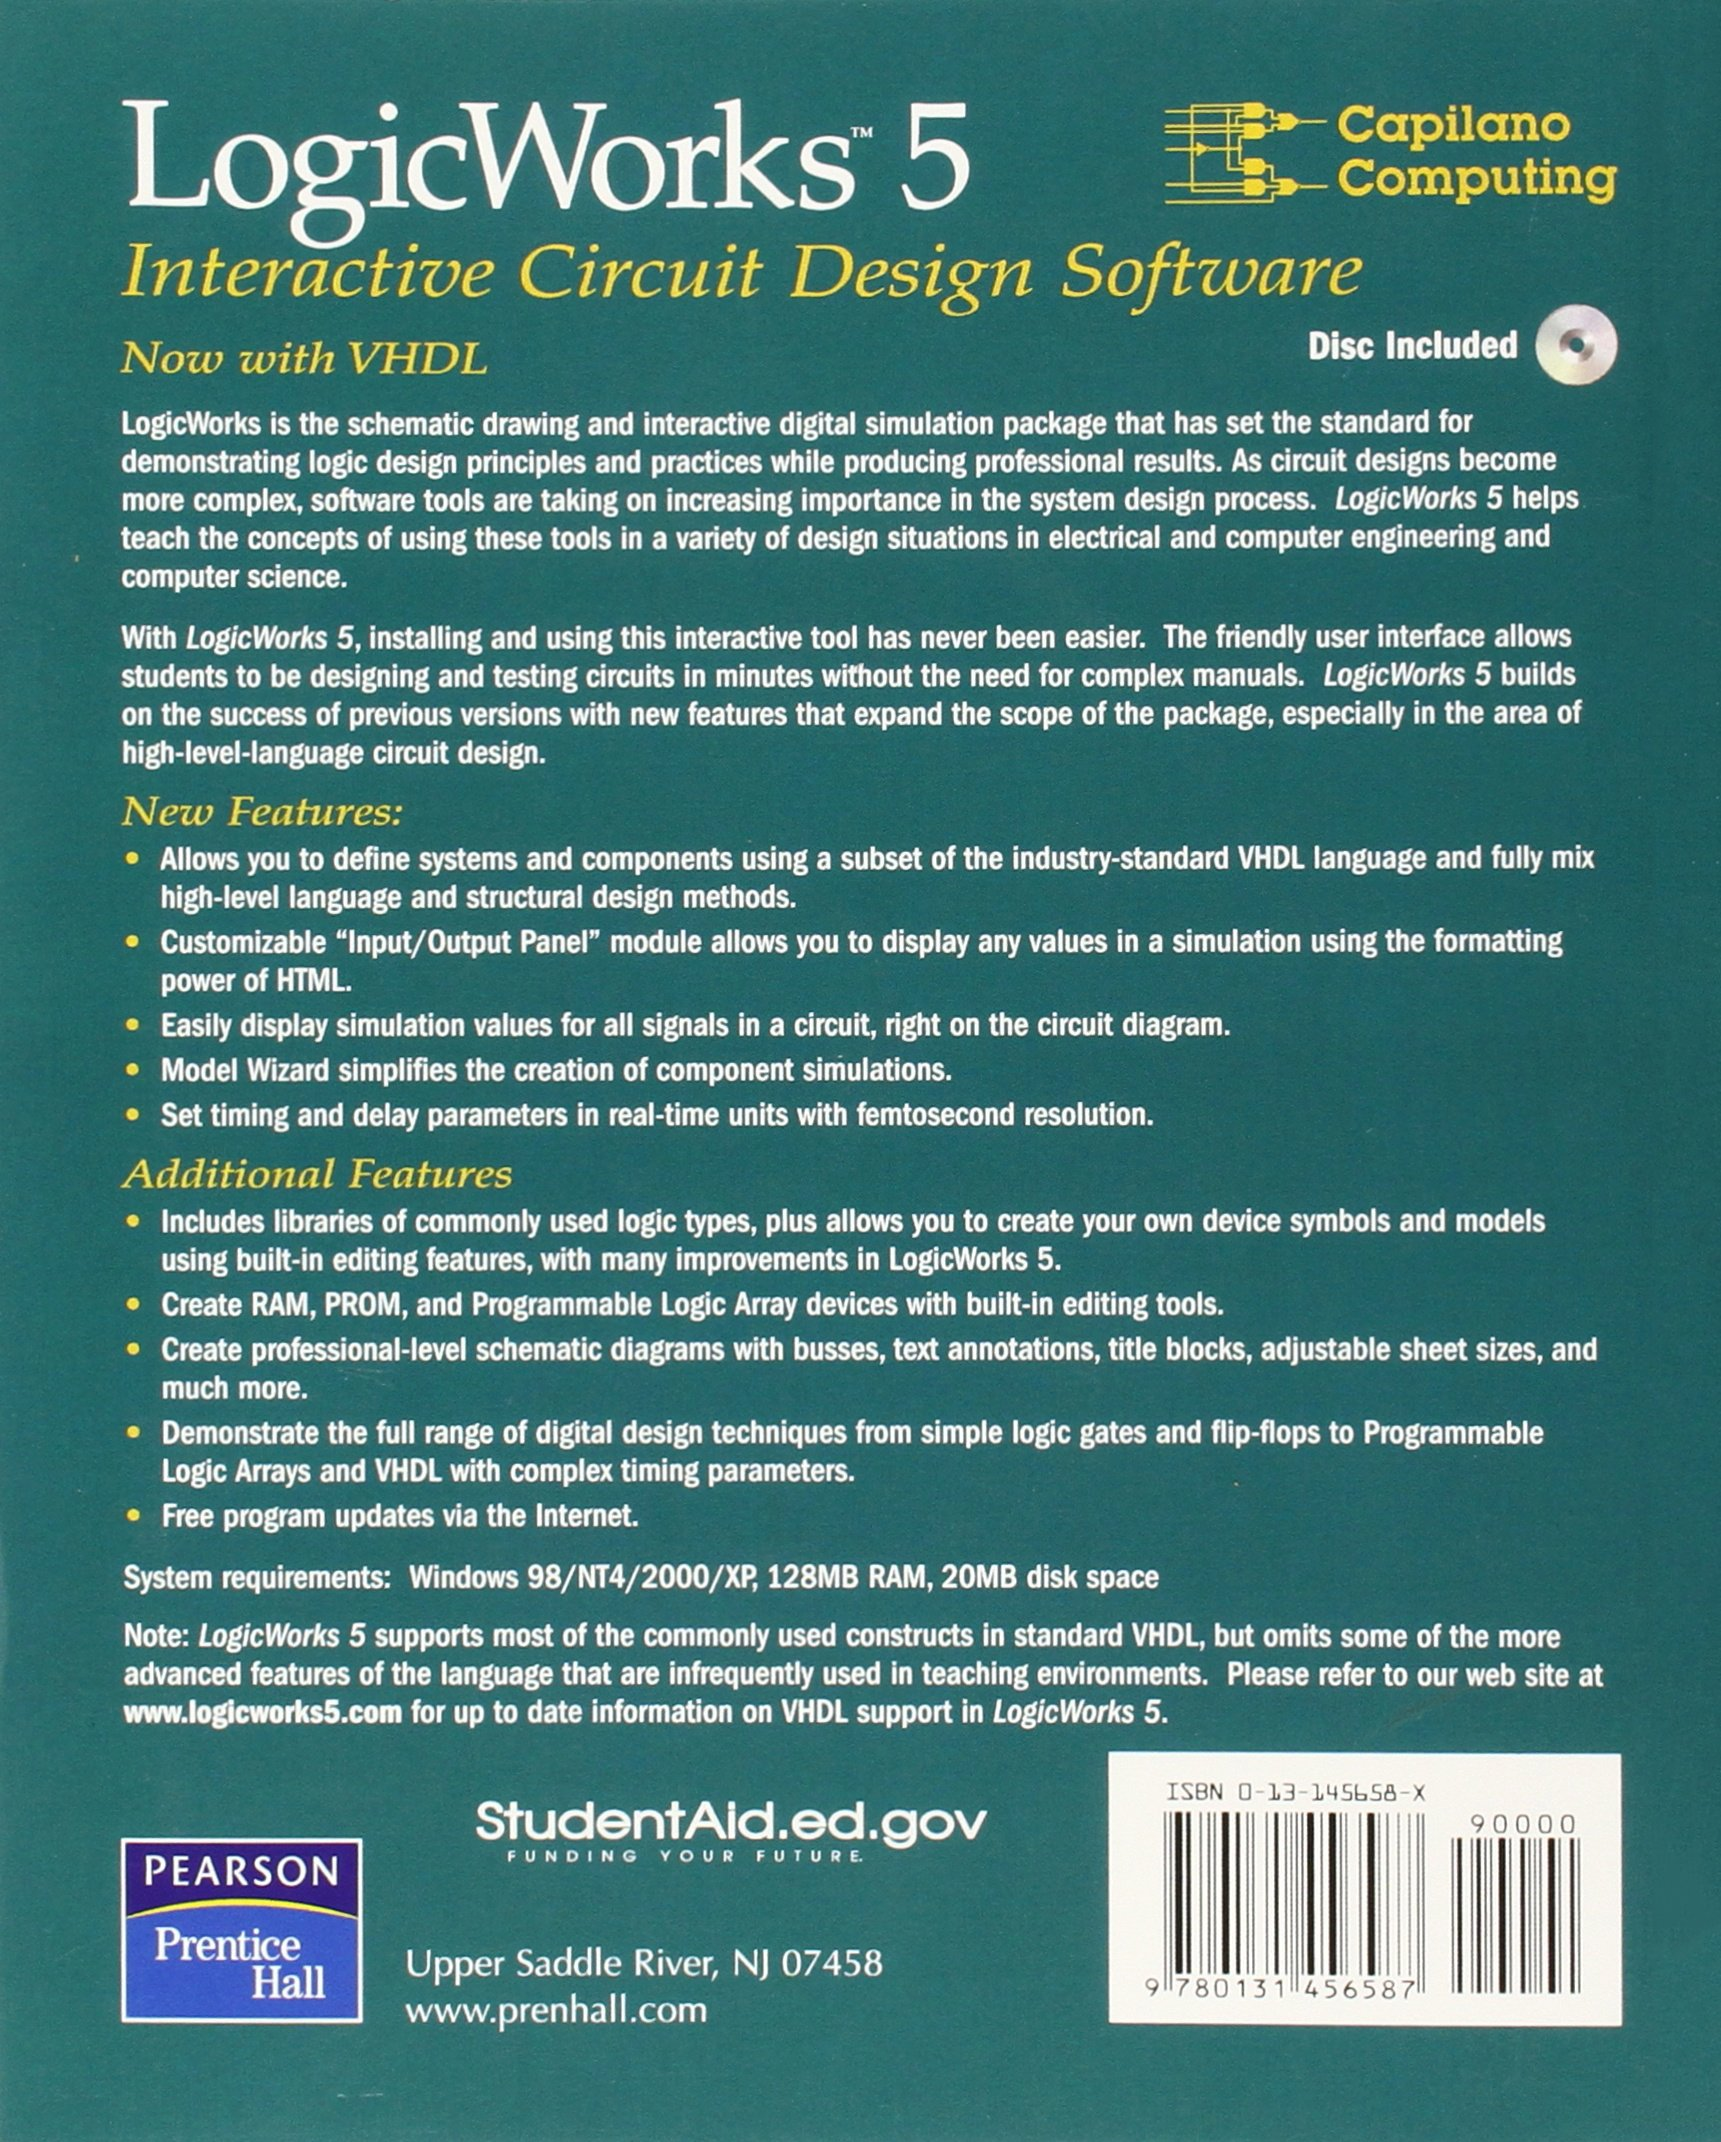 Logicworks 5 Interactive Software Capilano Computing X 9780131456587 Books Amazon Ca